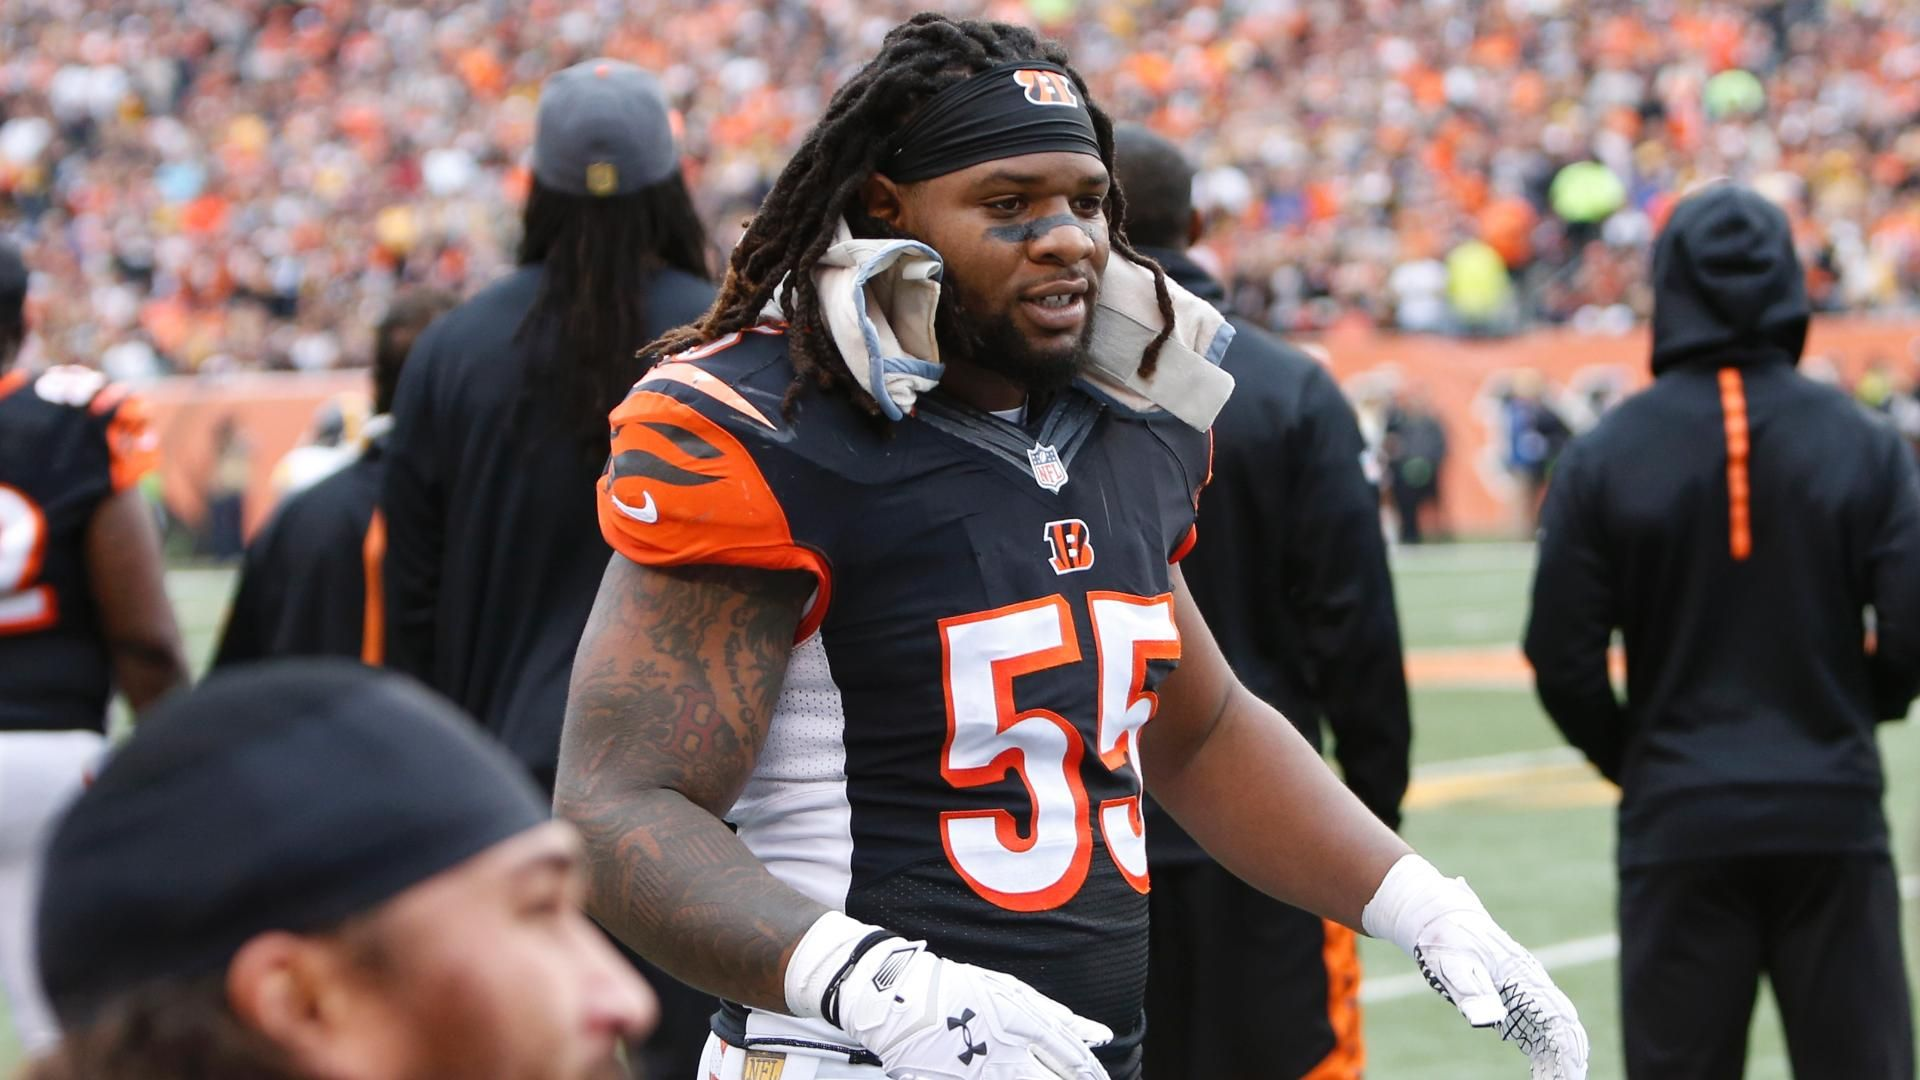 https://secure.espncdn.com/combiner/i?img=/media/motion/2015/1215/dm_151215_nfl_werder_on_burfict/dm_151215_nfl_werder_on_burfict.jpg